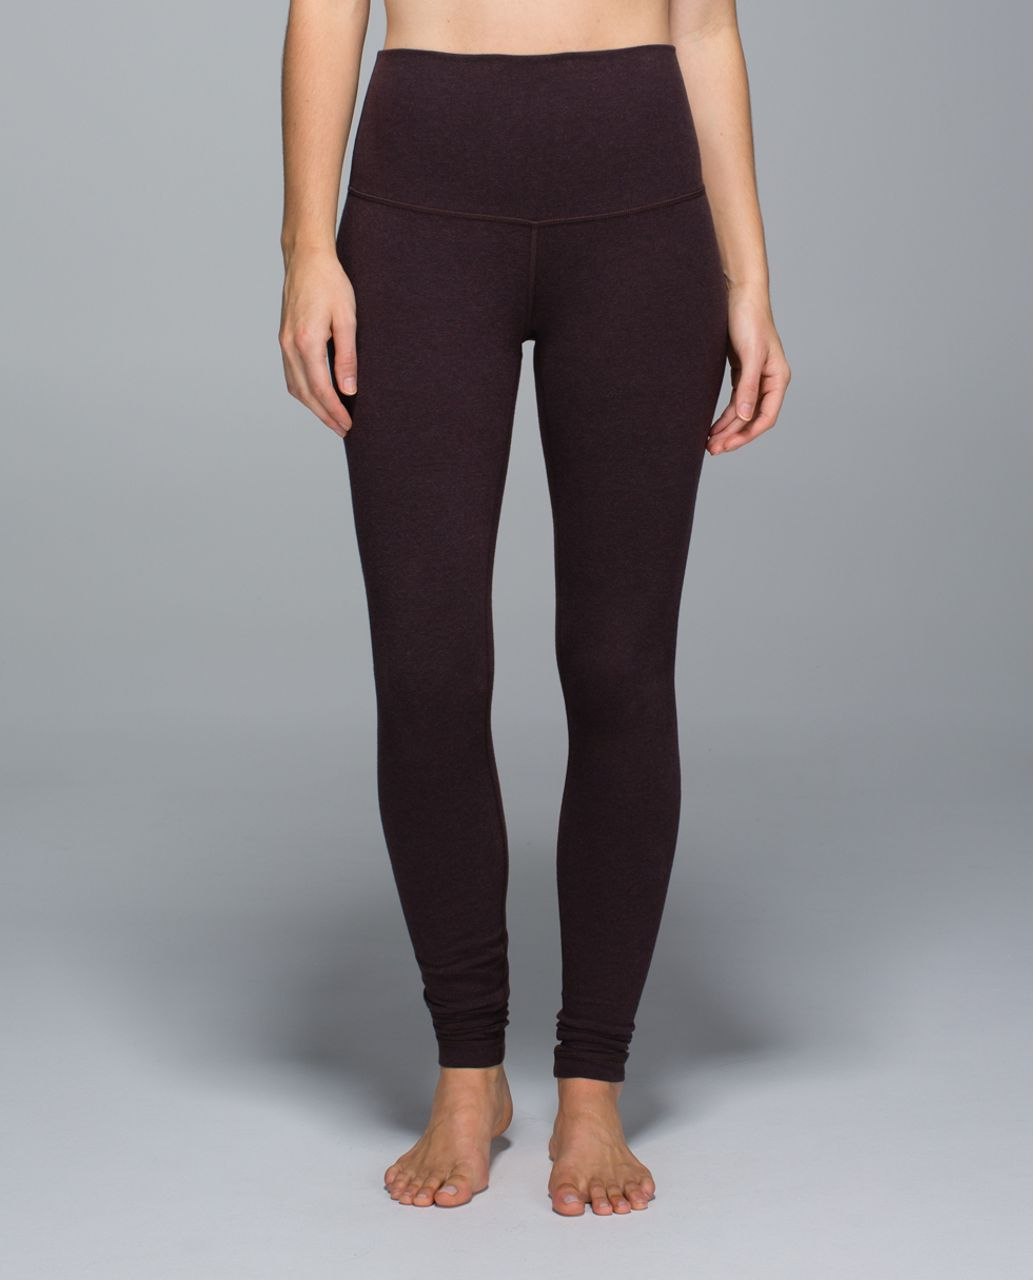 Lululemon Wunder Under Pant *Cotton (Roll Down) - Heathered Rich Earth